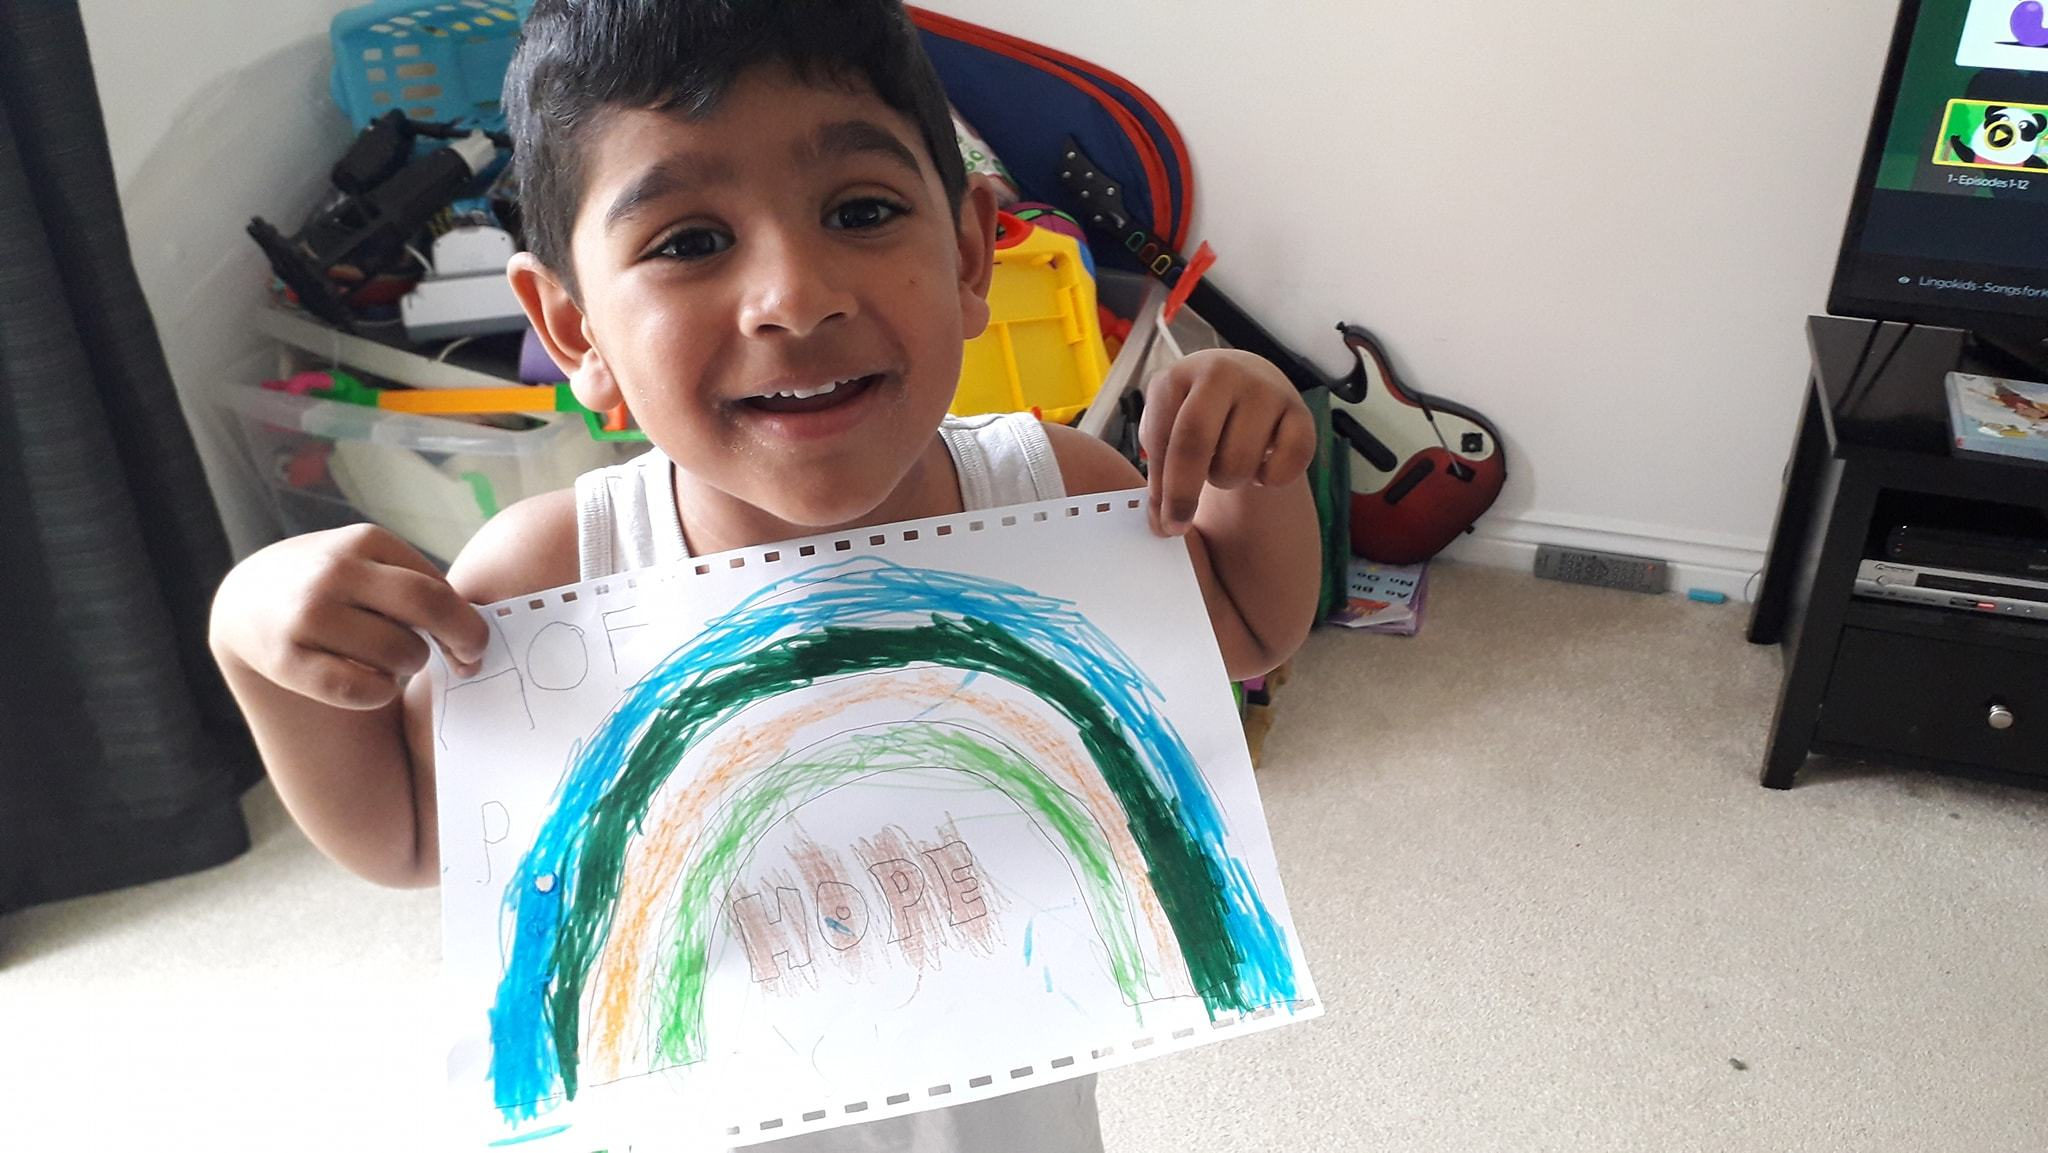 4-year-old-Joel-with-his-rainbow-picture-Gurmeet-Chauhans-photo